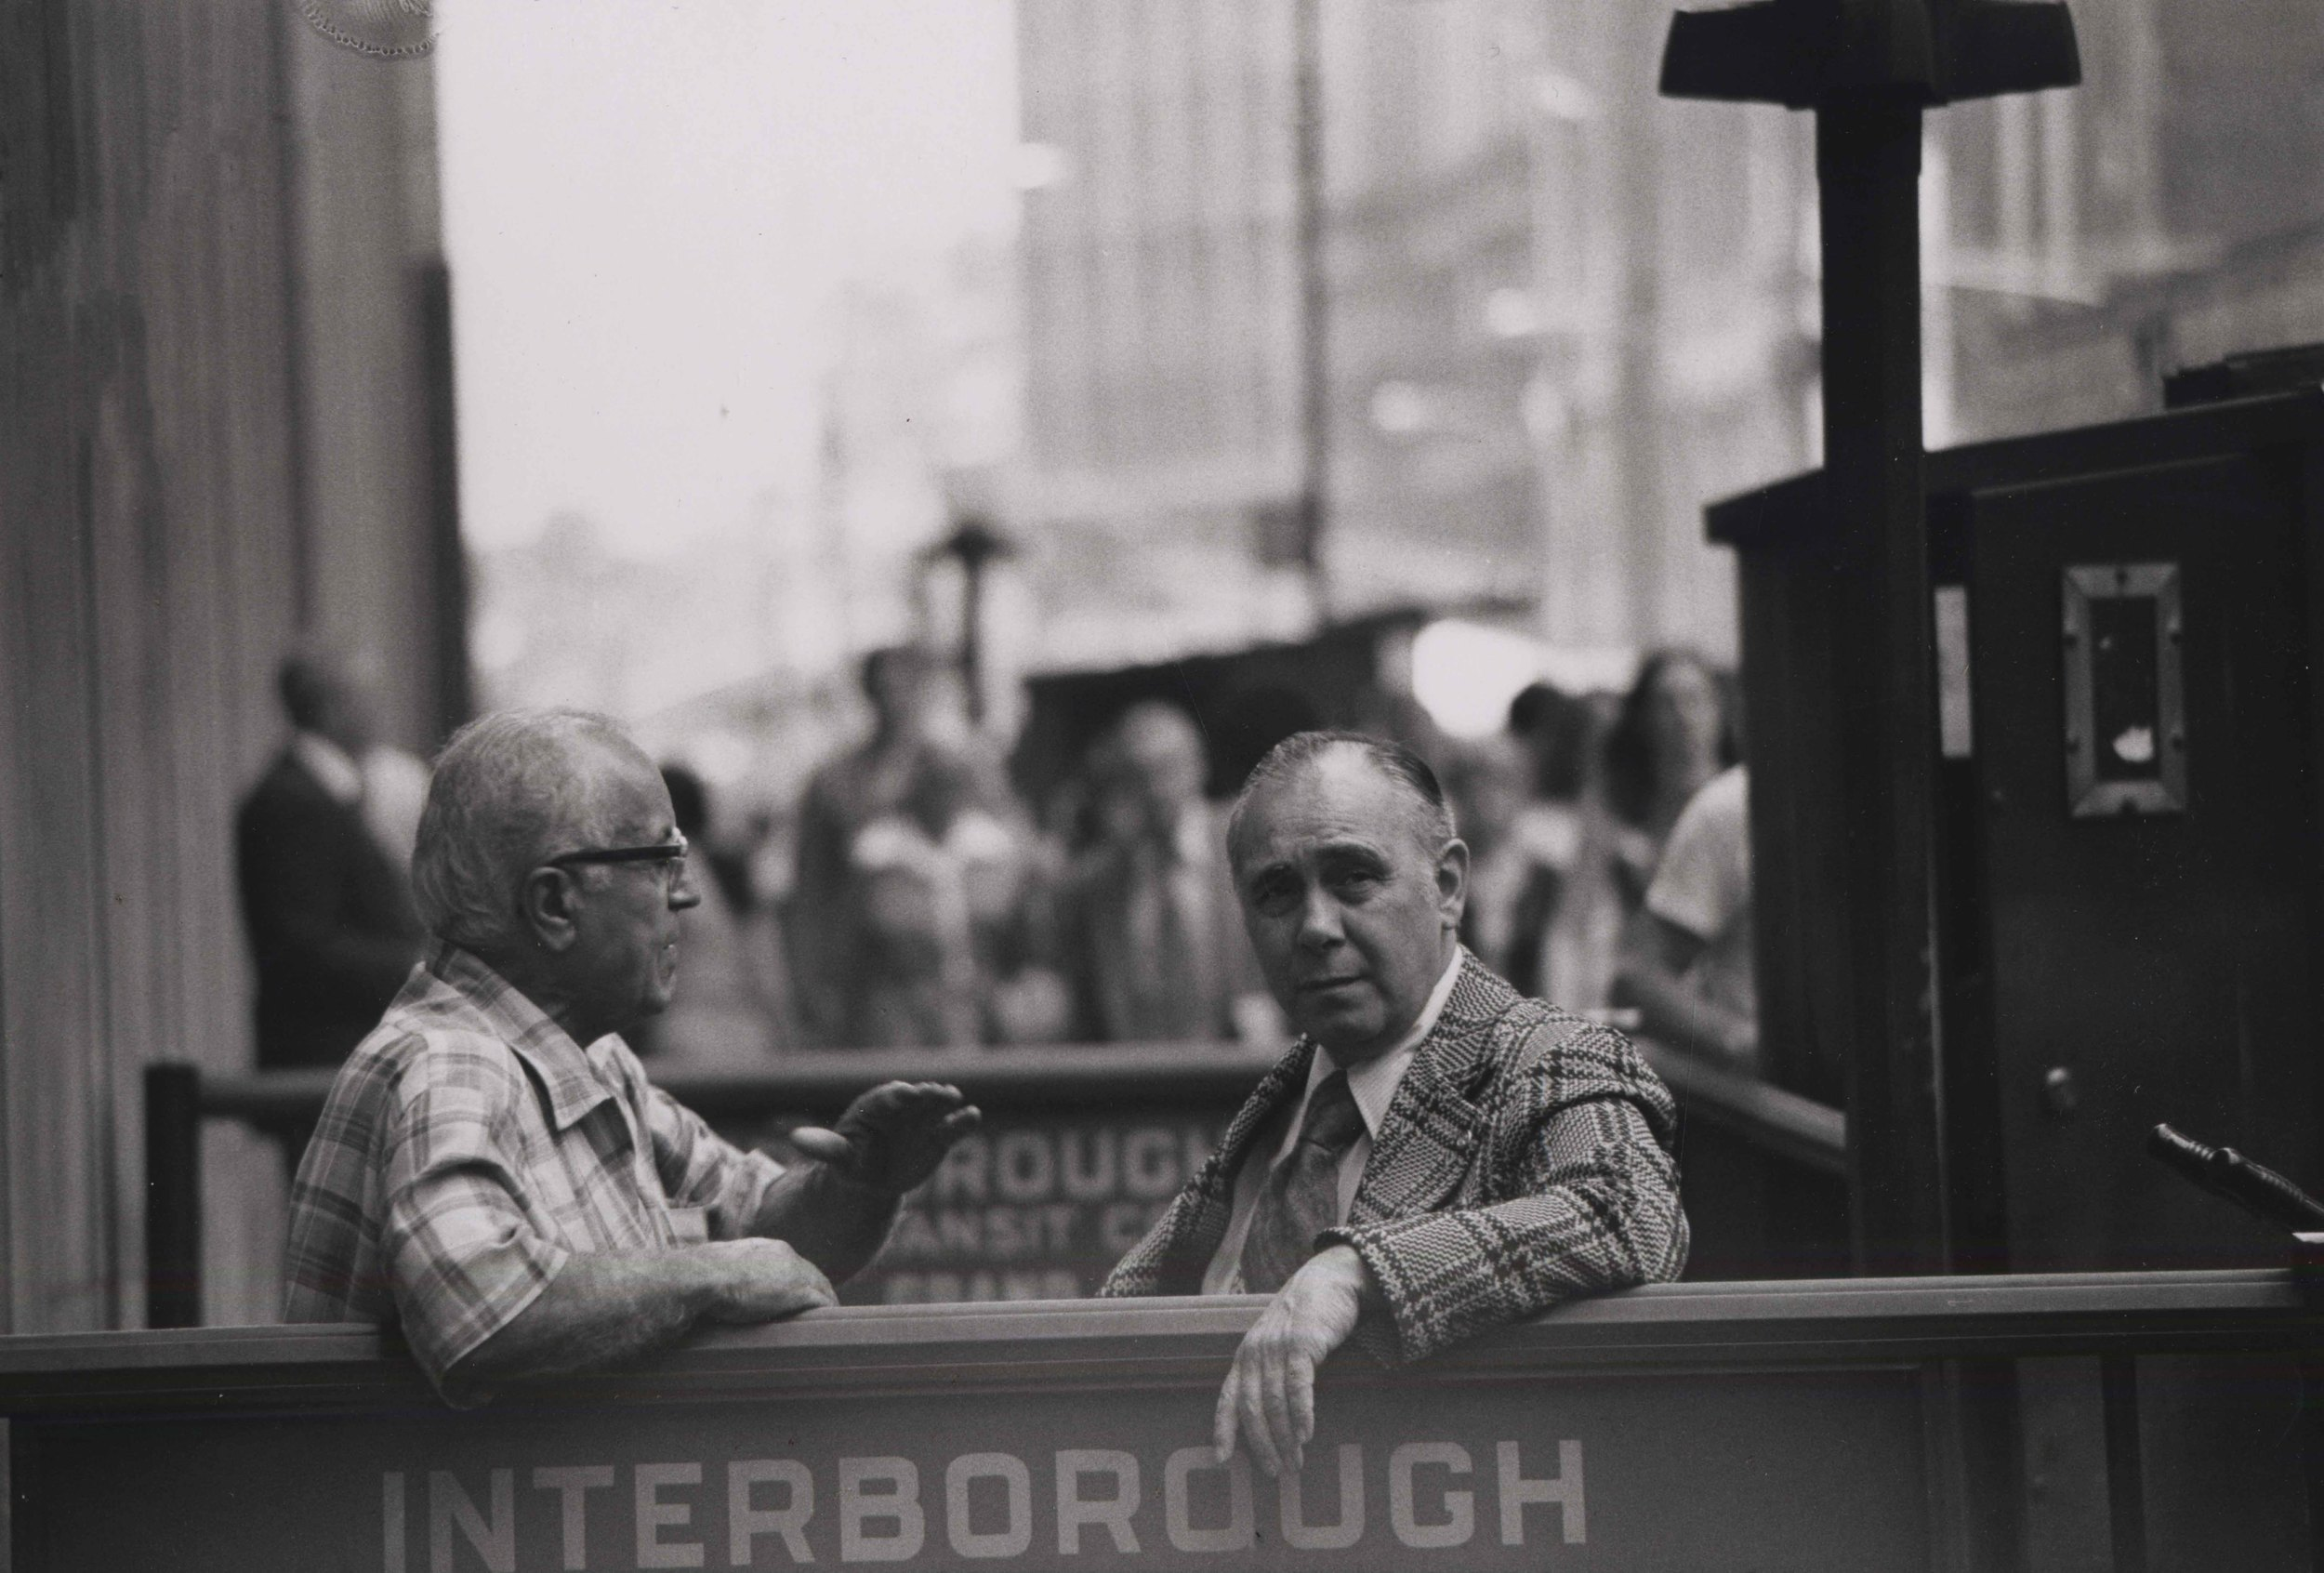 15_92_Two men conversing while looking over a fence_Dan Wynn Archive.jpeg